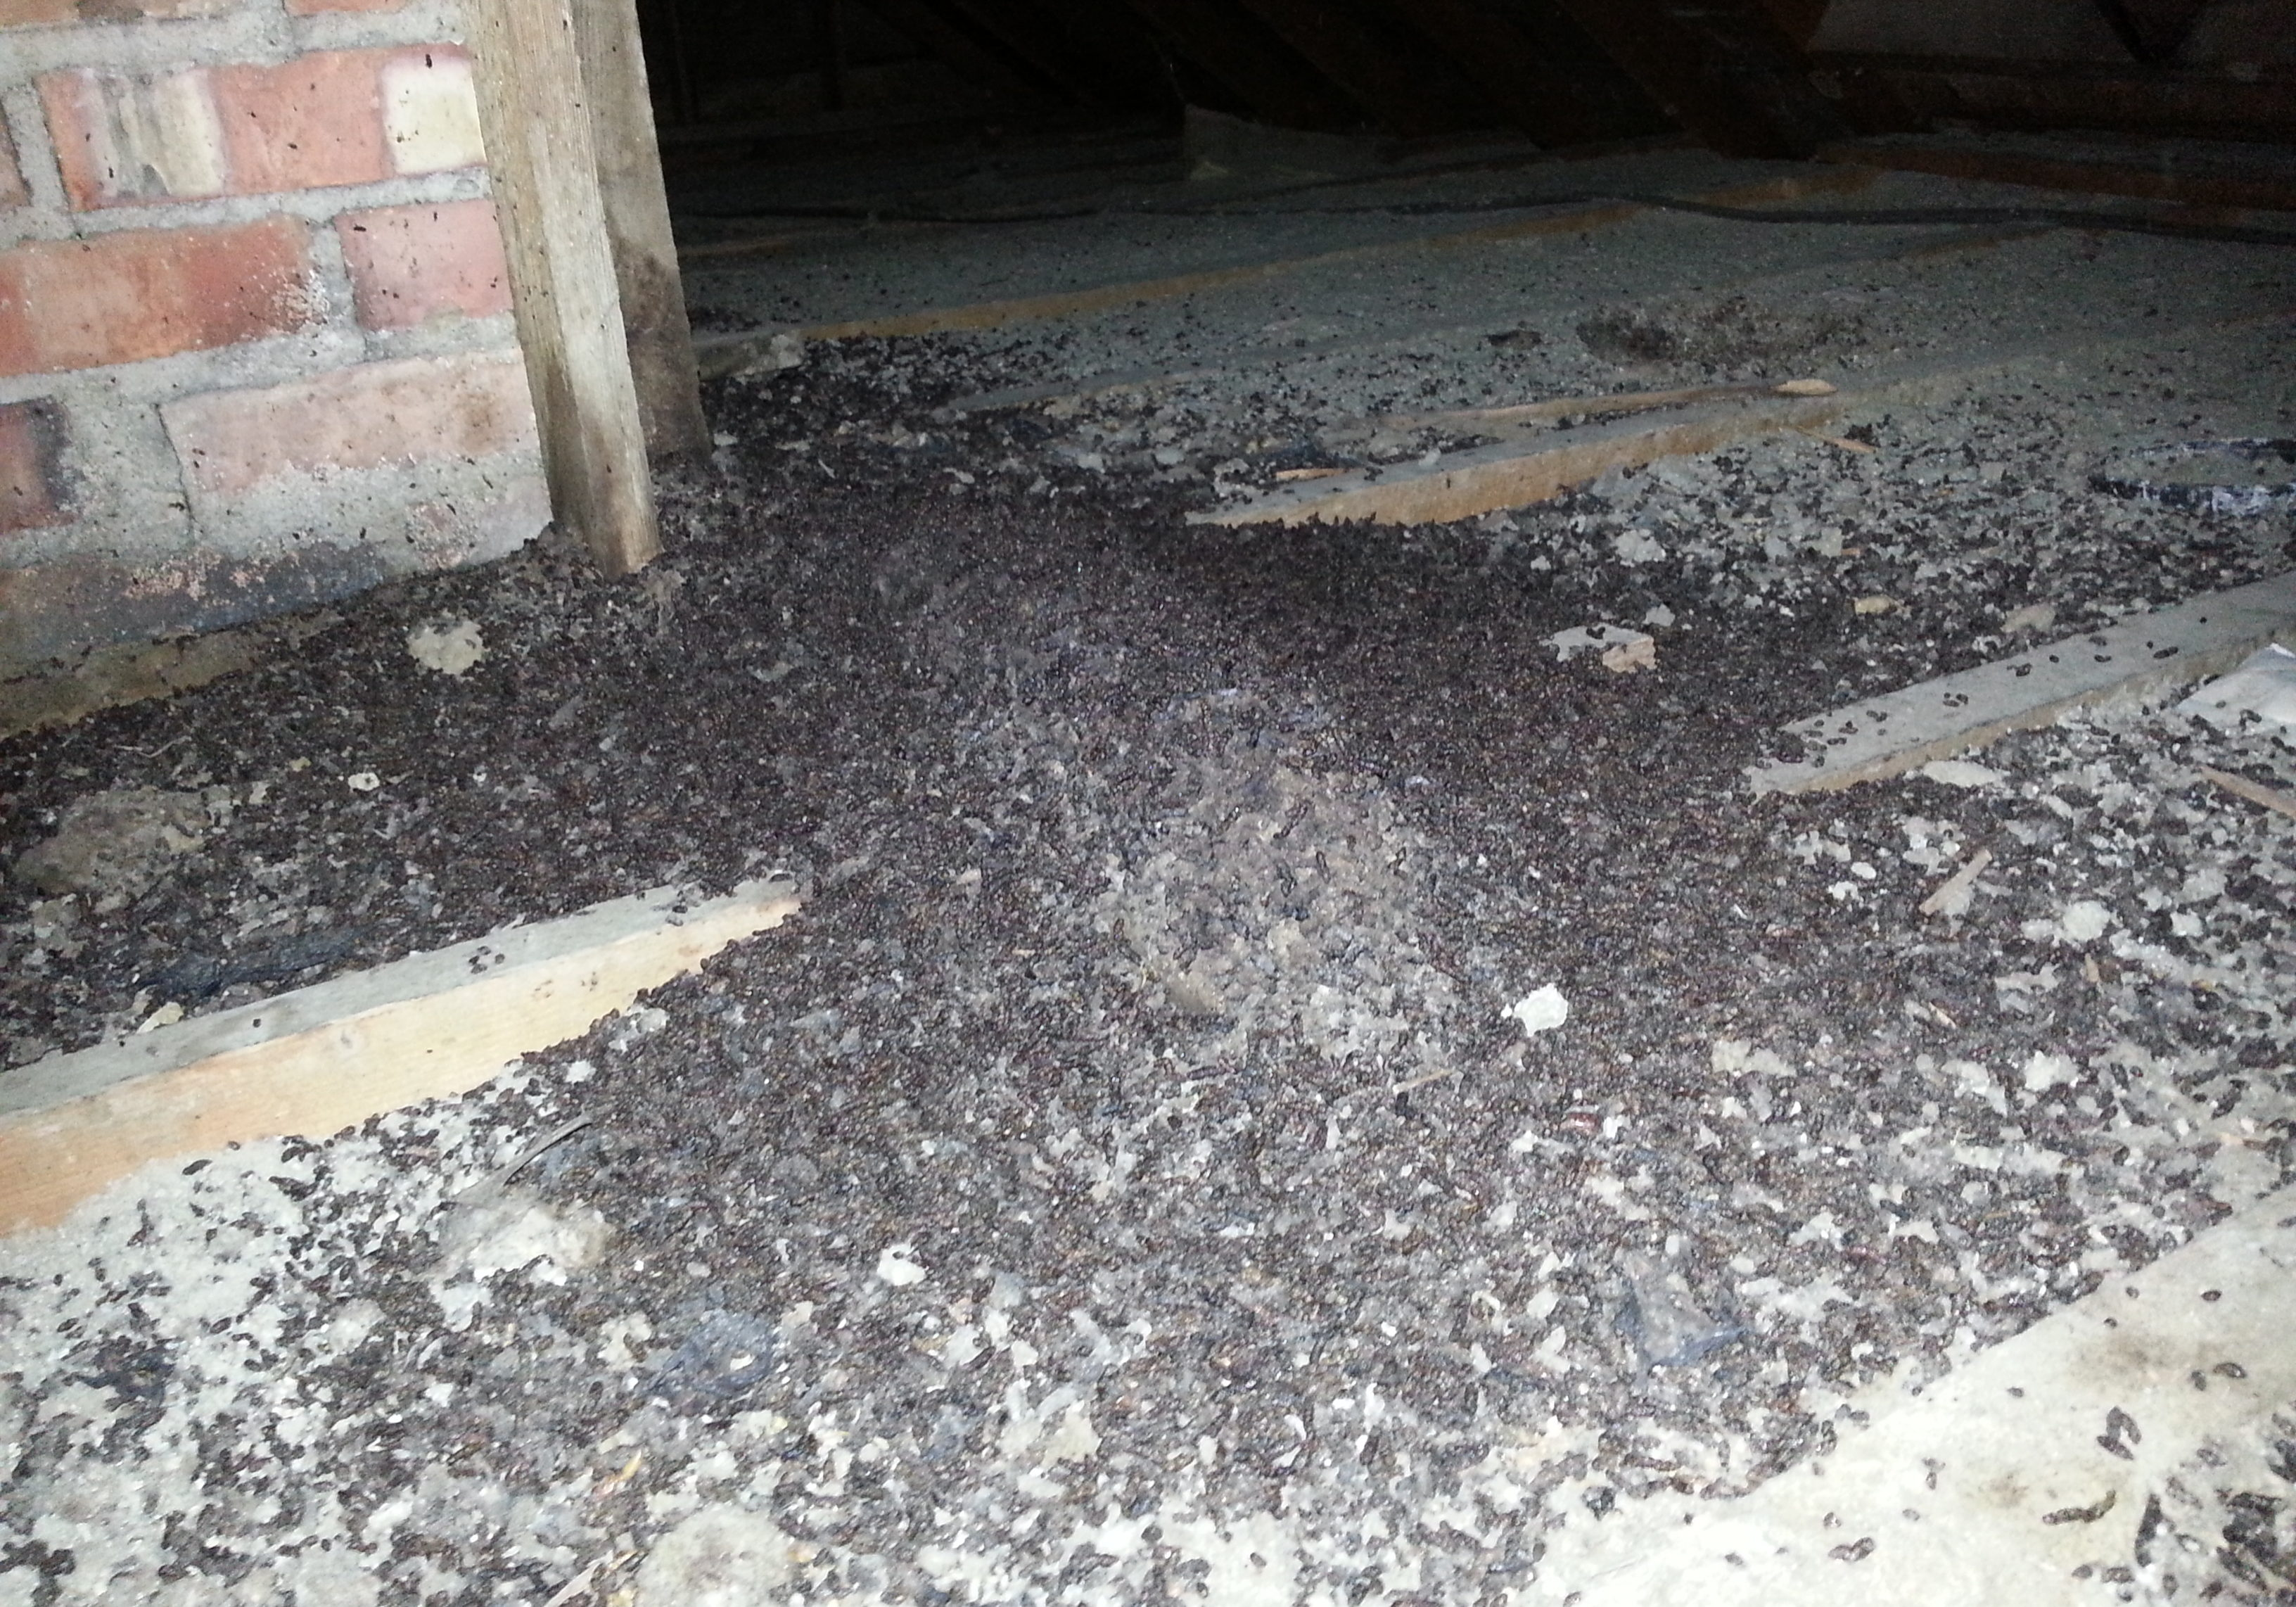 Bat Guano in the attic